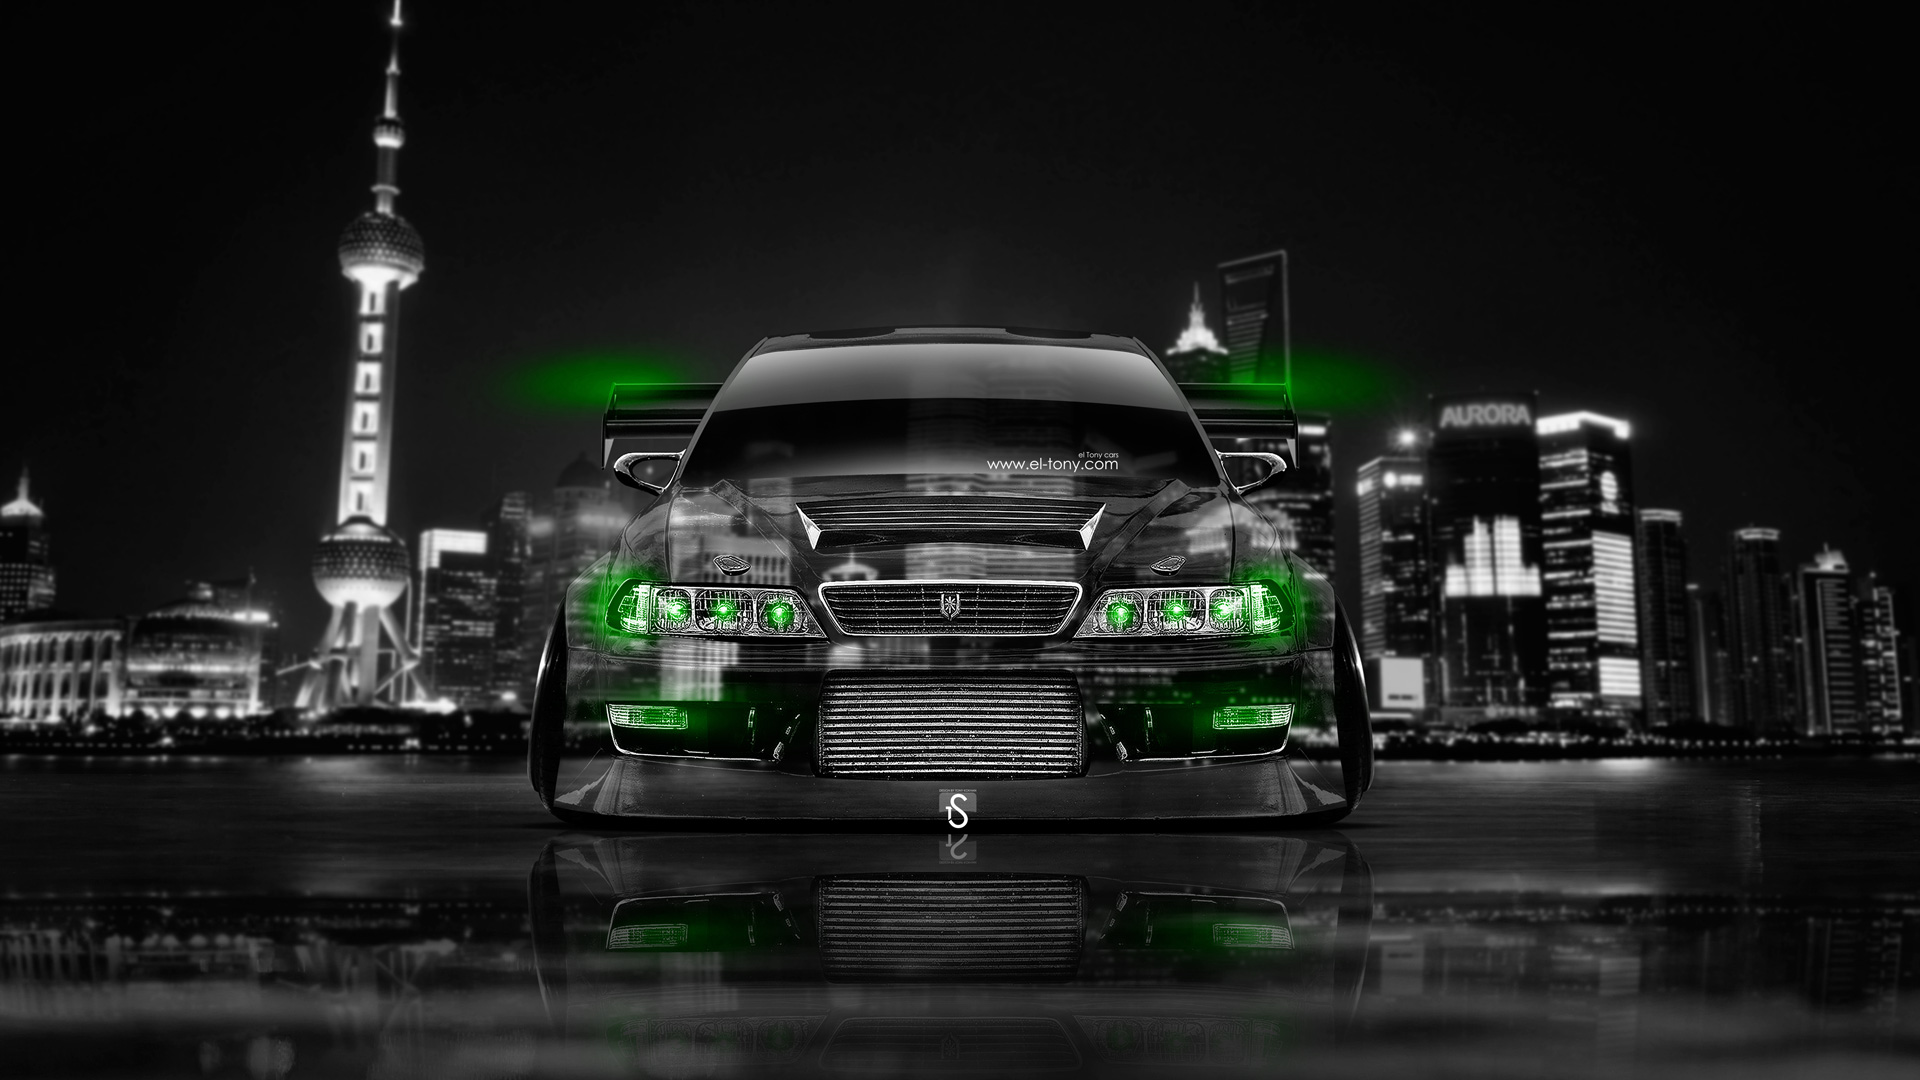 Exceptional Toyota Mark 2 JZX100 Tuning JDM Front Crystal .